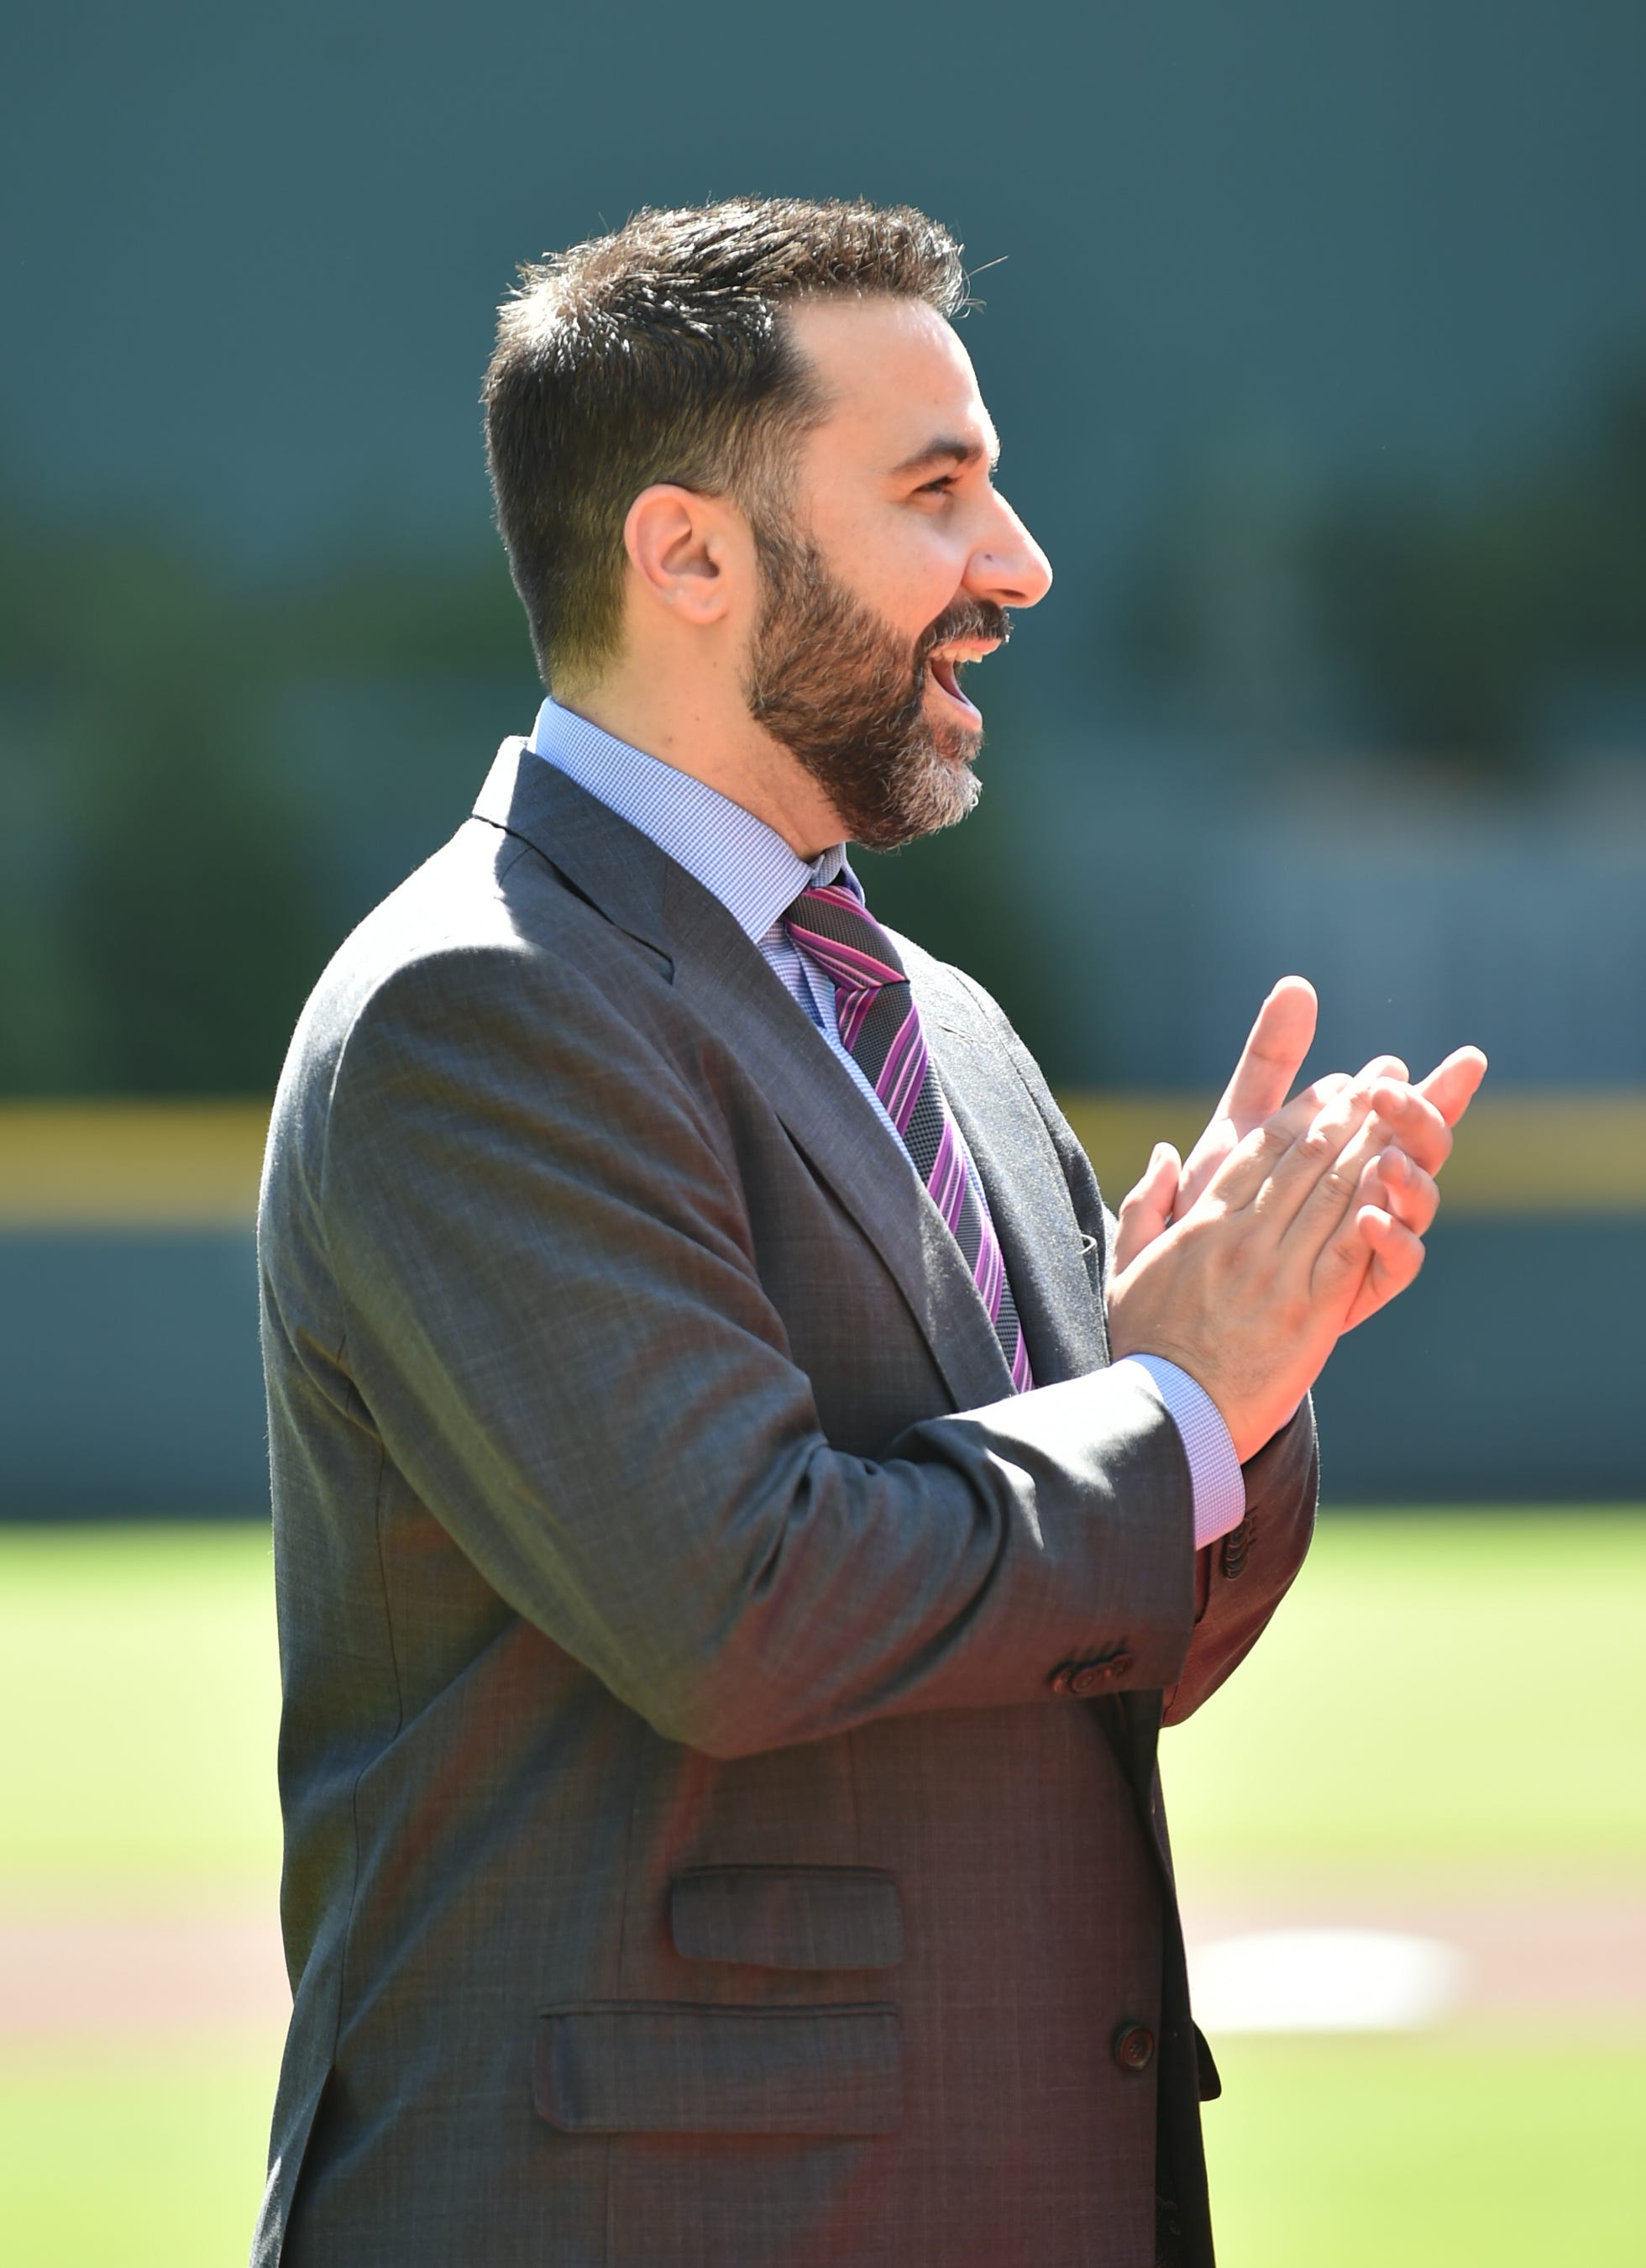 MLBPA launches investigation into Braves GM Alex Anthopoulos after free agency comments